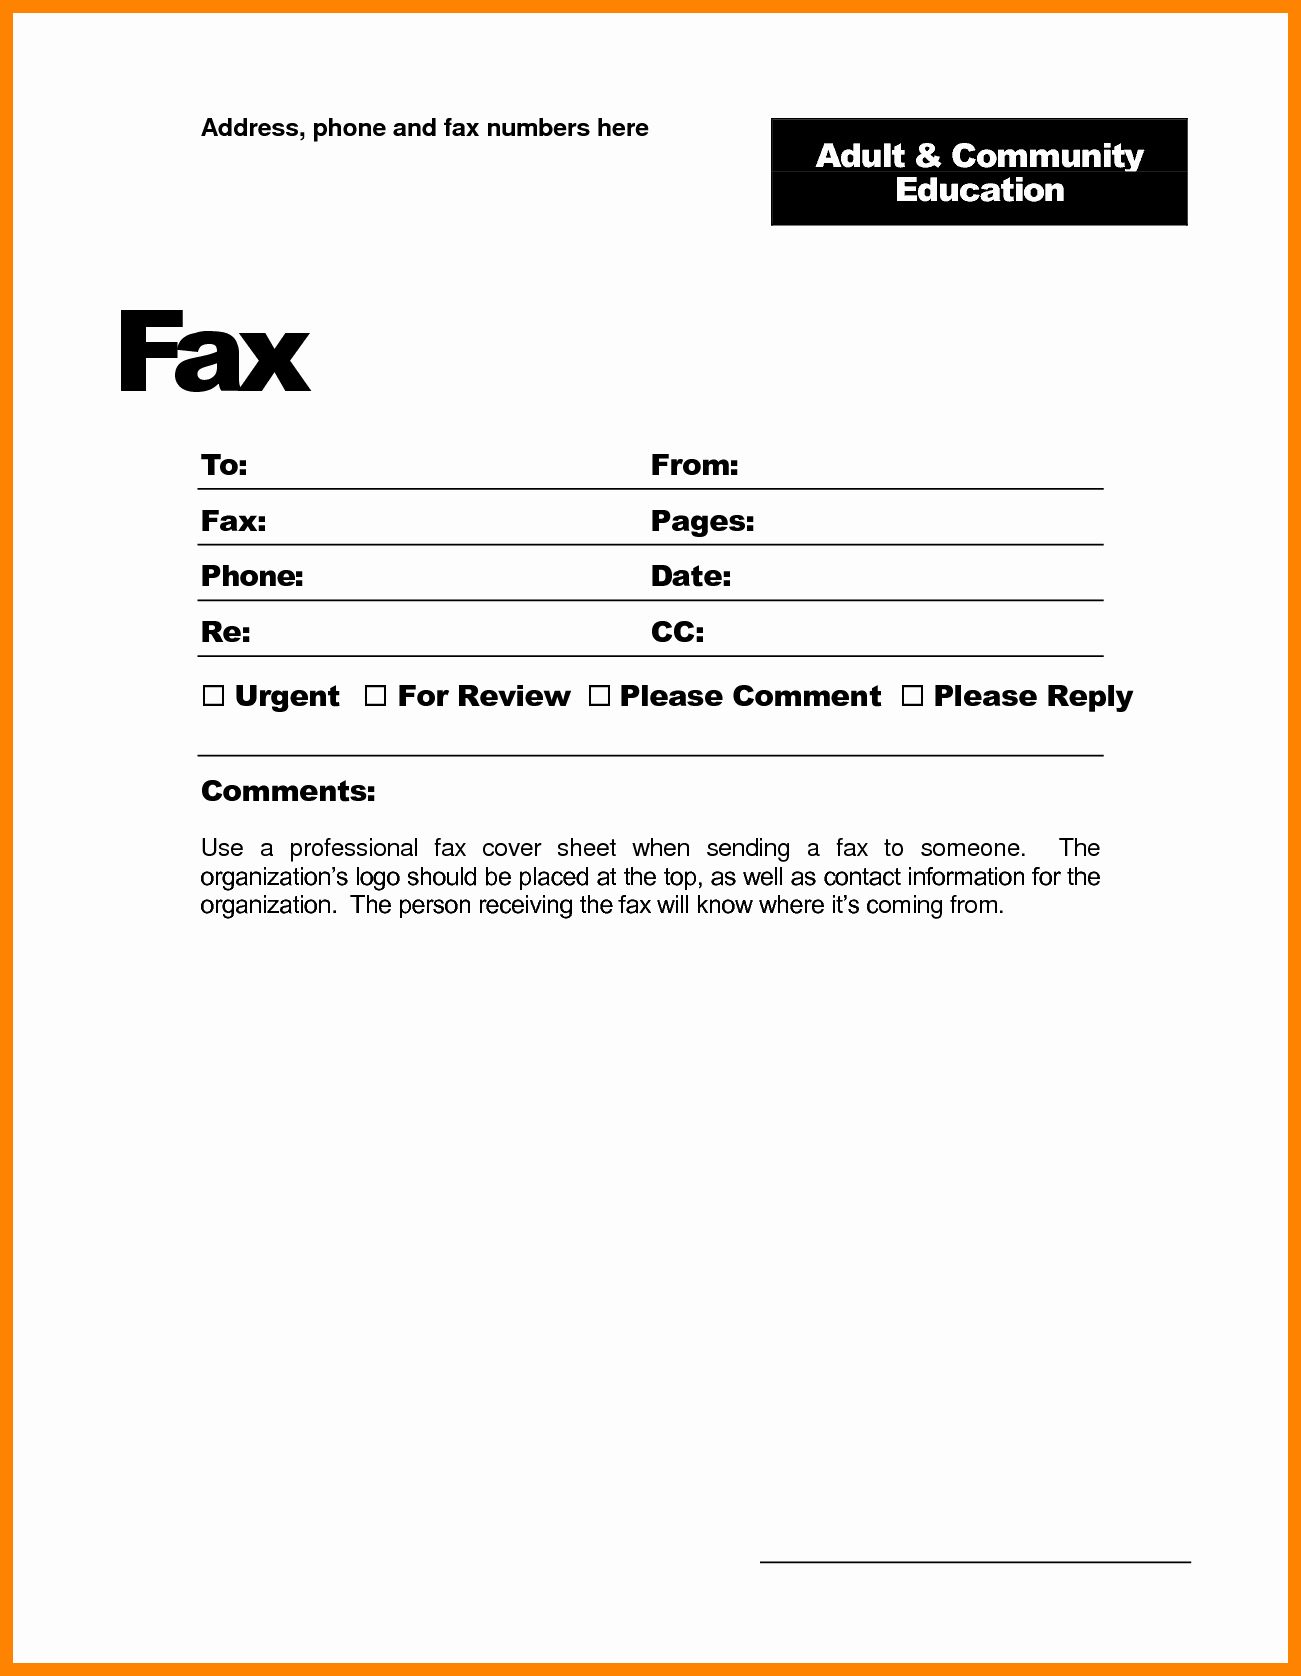 How to Fax Cover Sheet Luxury Fax Cover Template Word Portablegasgrillweber